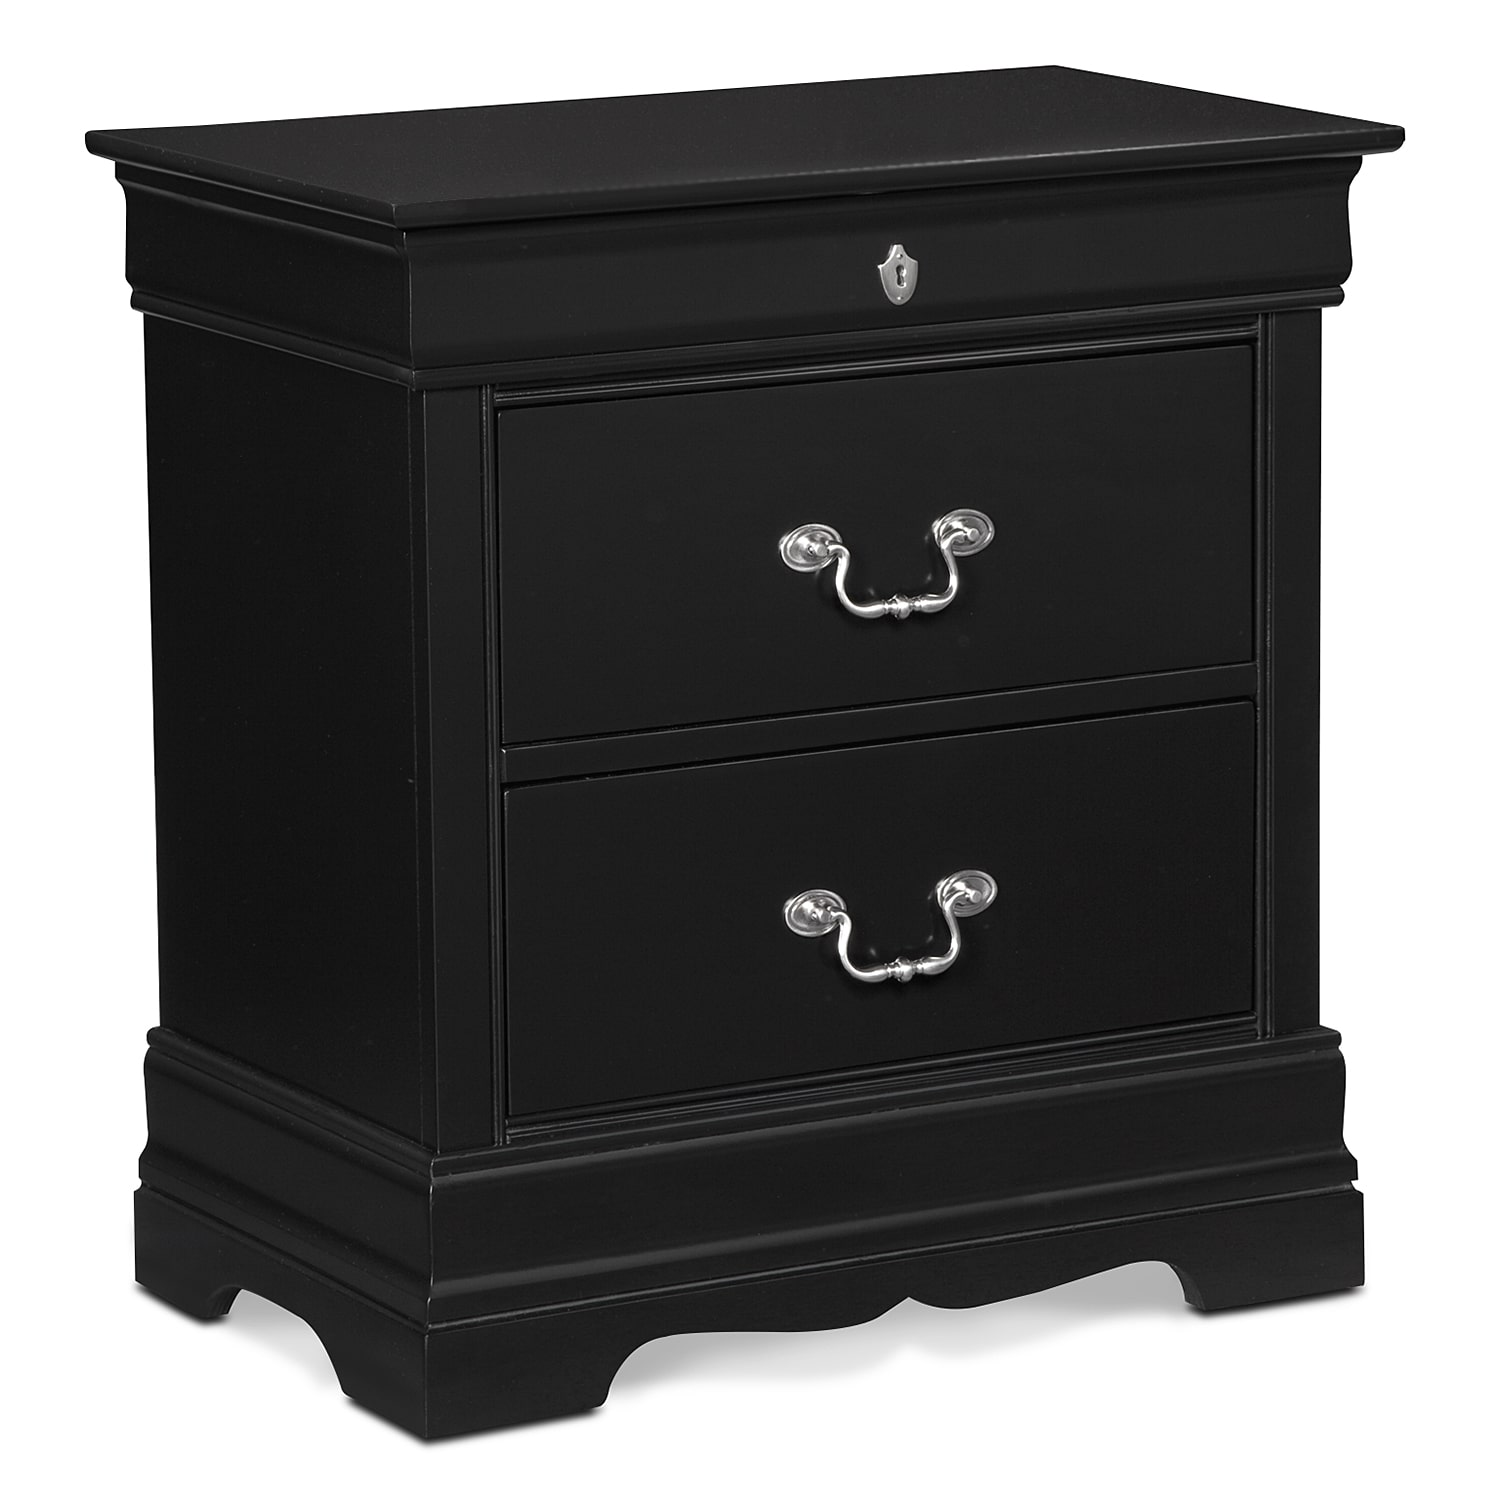 Neo classic black nightstand value city furniture - Pictures of nightstands ...